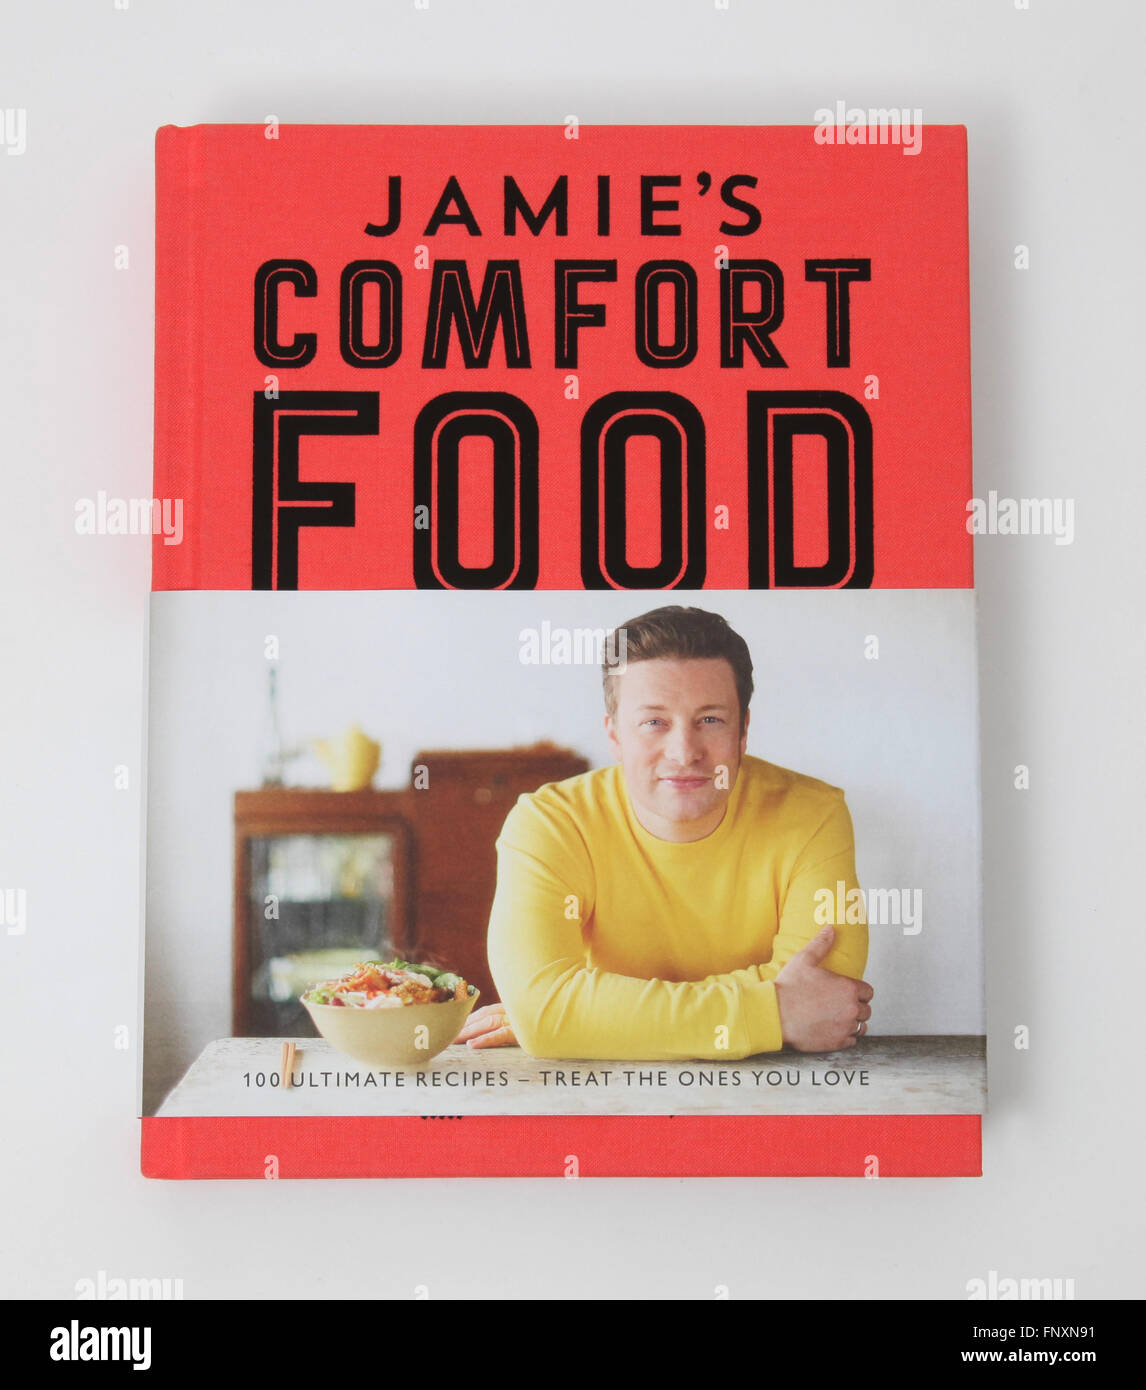 A cookery book called jamies comfort food by jamie oliver stock a cookery book called jamies comfort food by jamie oliver forumfinder Images